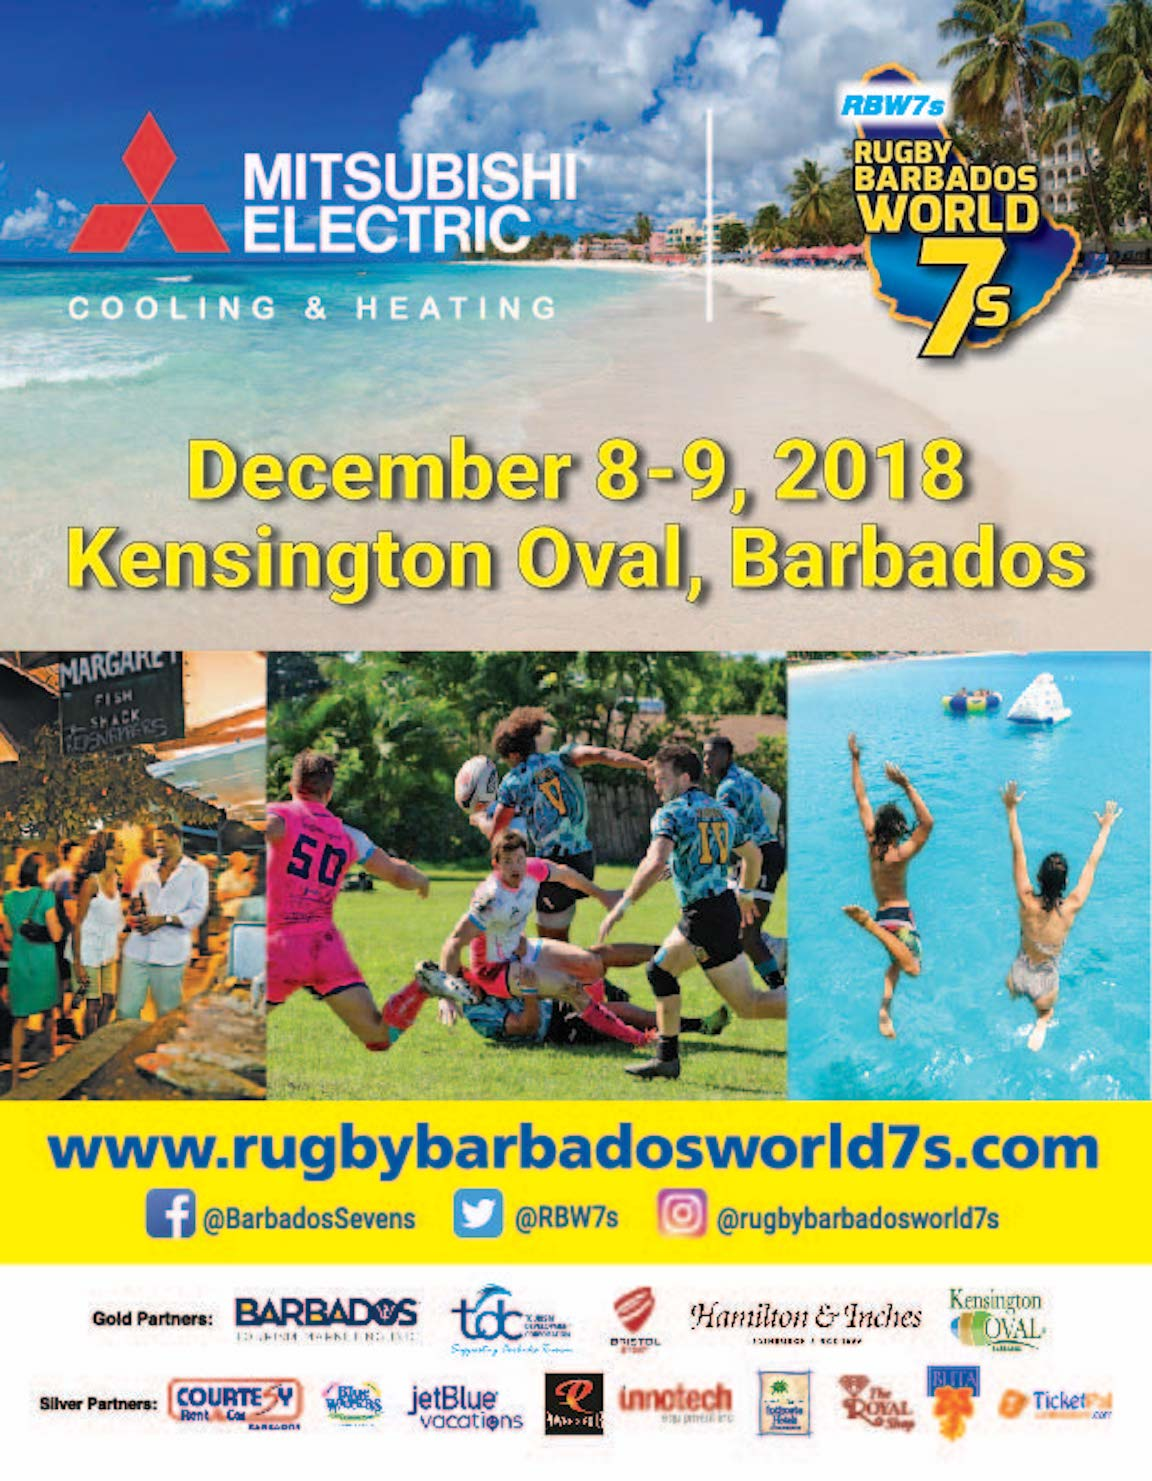 Mitsubishi Electric Rugby Barbados World 7s - 3Ws Hospitality Suites - Day 2